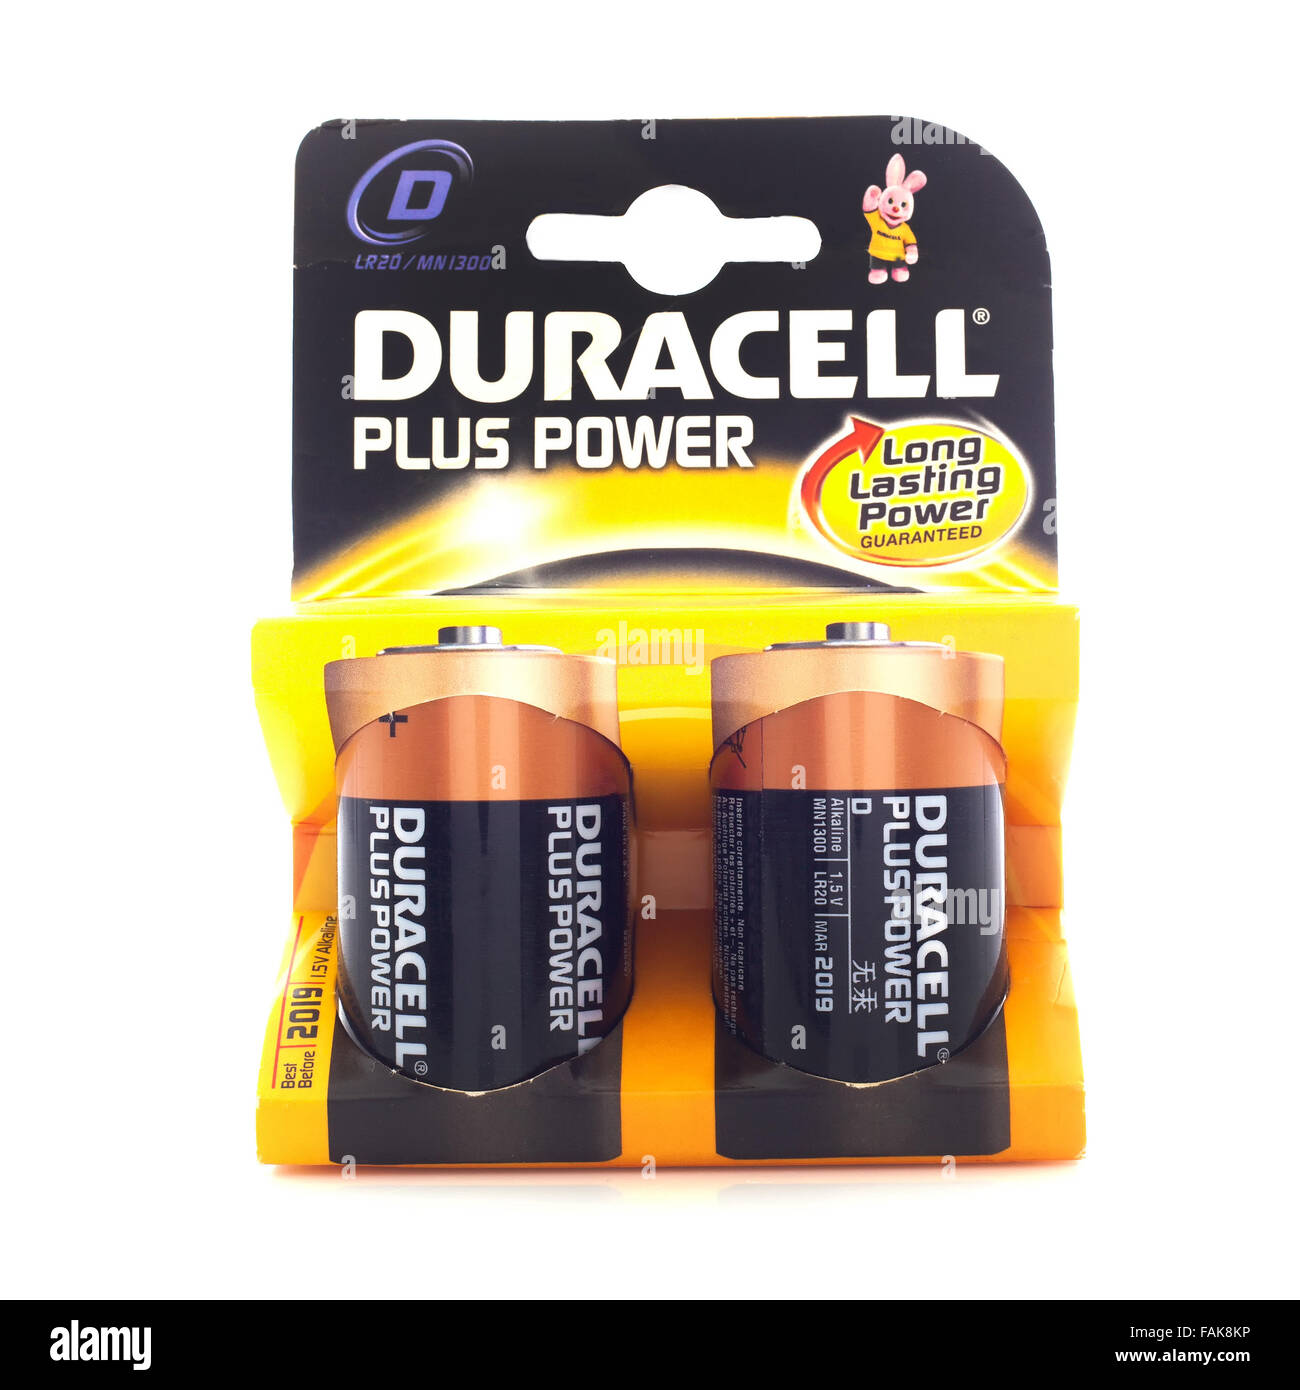 Pack of Duracell C Cell Batteries, Duracell is an American brand of batteries and smart power solutions - Stock Image